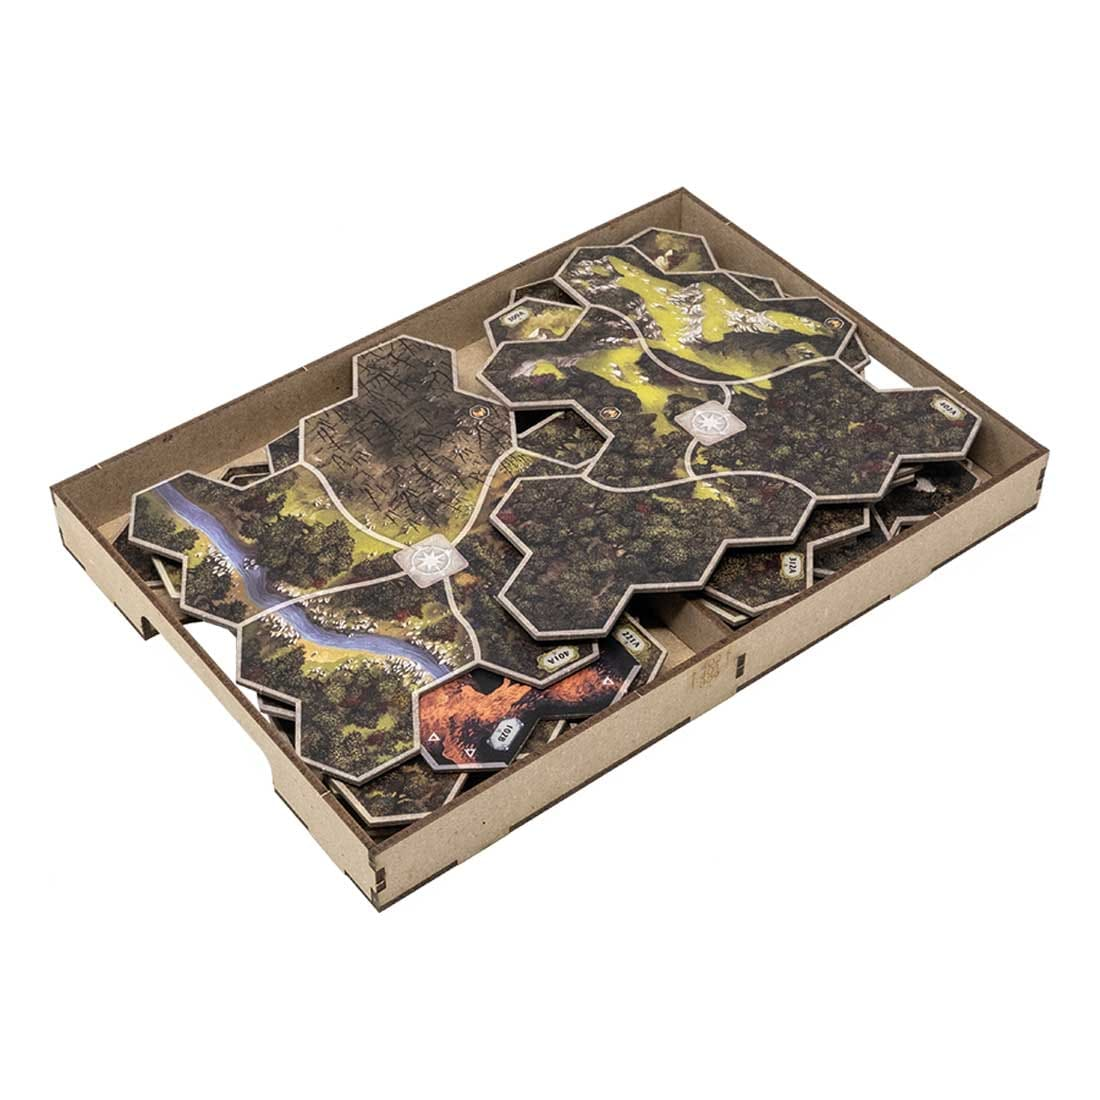 The Lord Of The Rings: Journeys In Middle-Earth Expansions Organizer Insert - 5